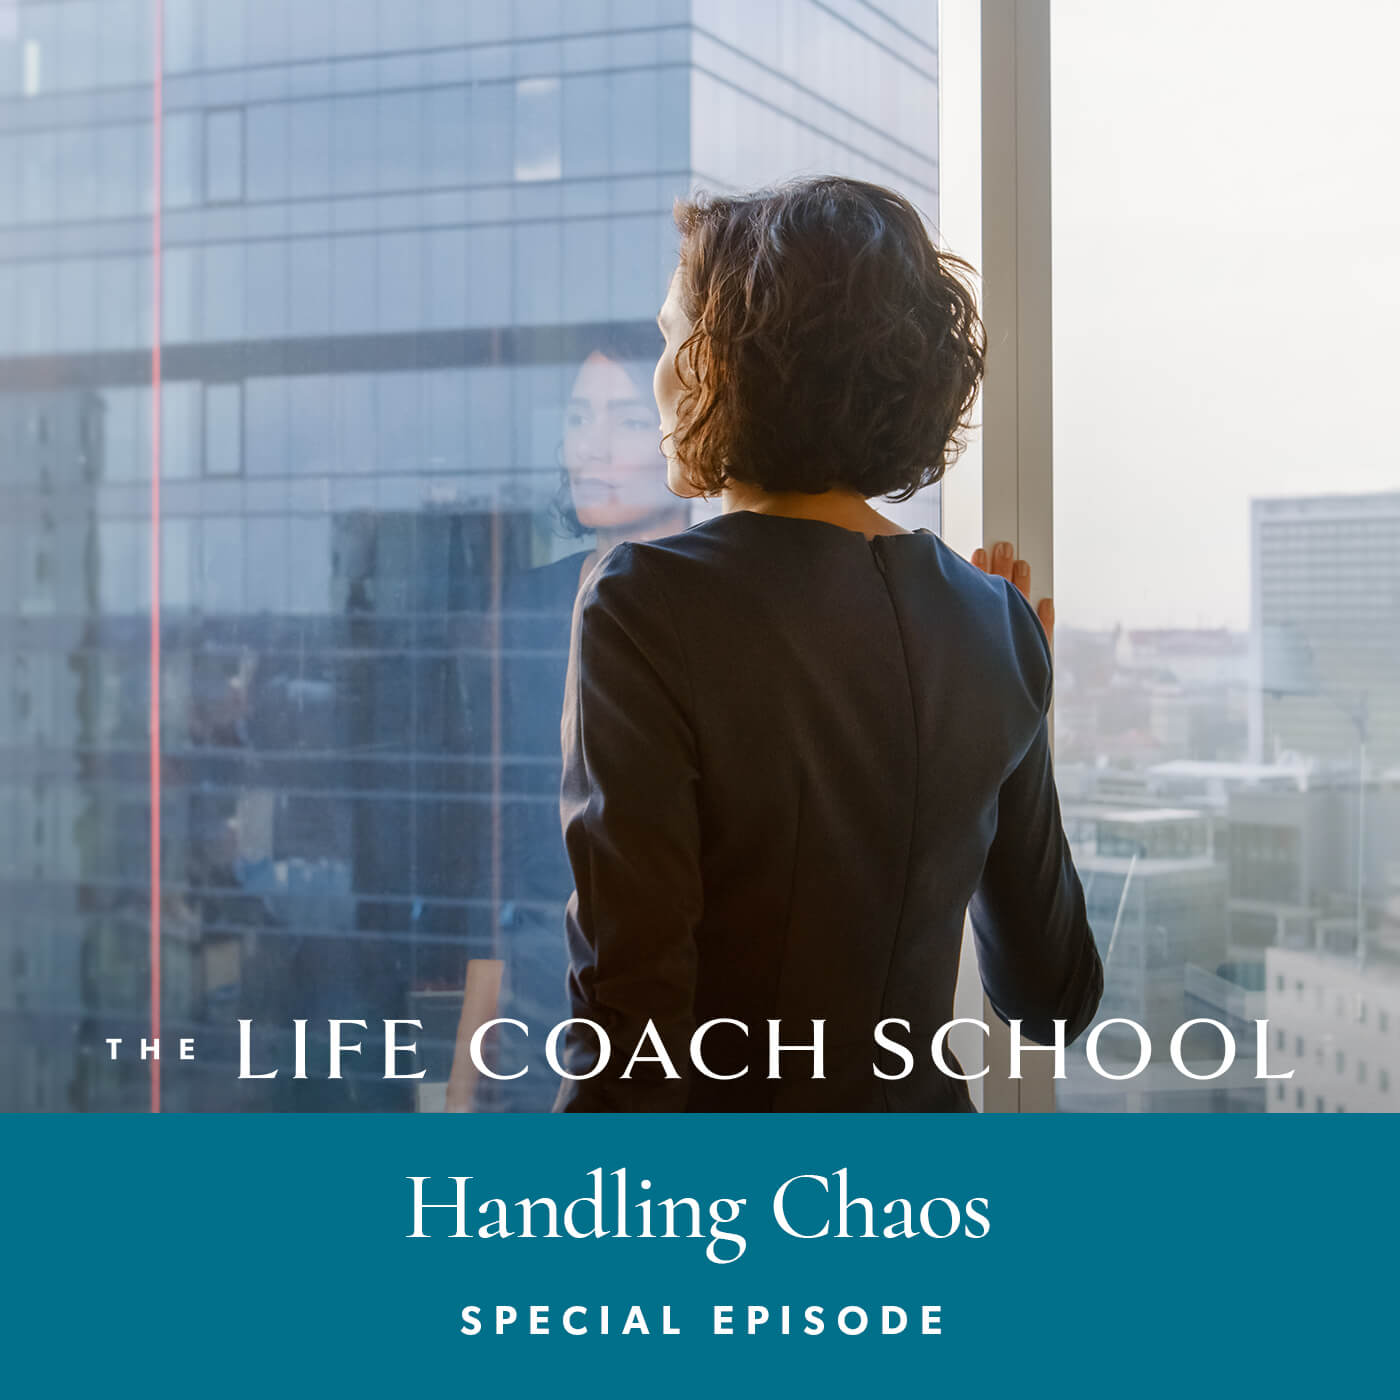 The Life Coach School Podcast with Brooke Castillo | Special Episode | Handling Chaos